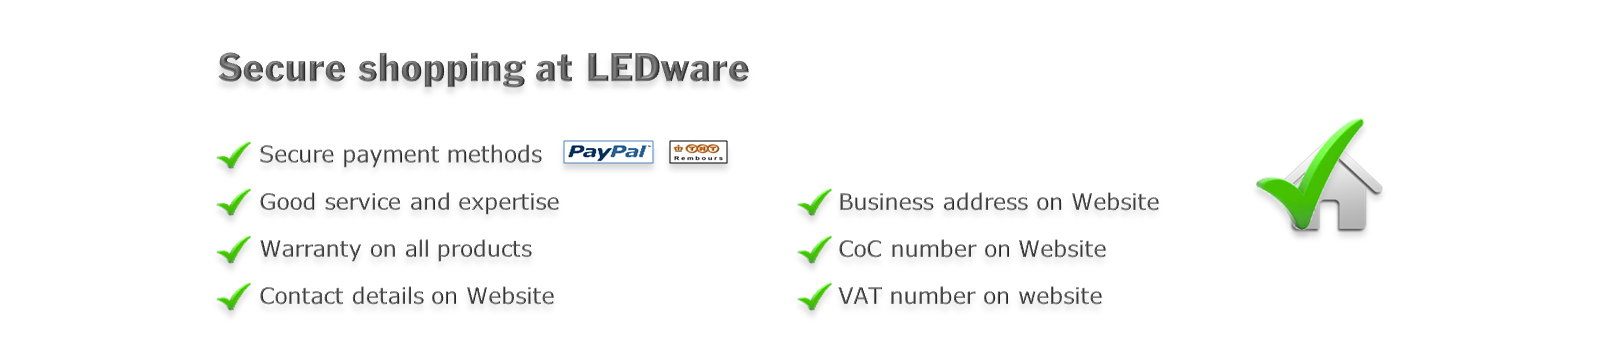 Secure shopping at LEDware